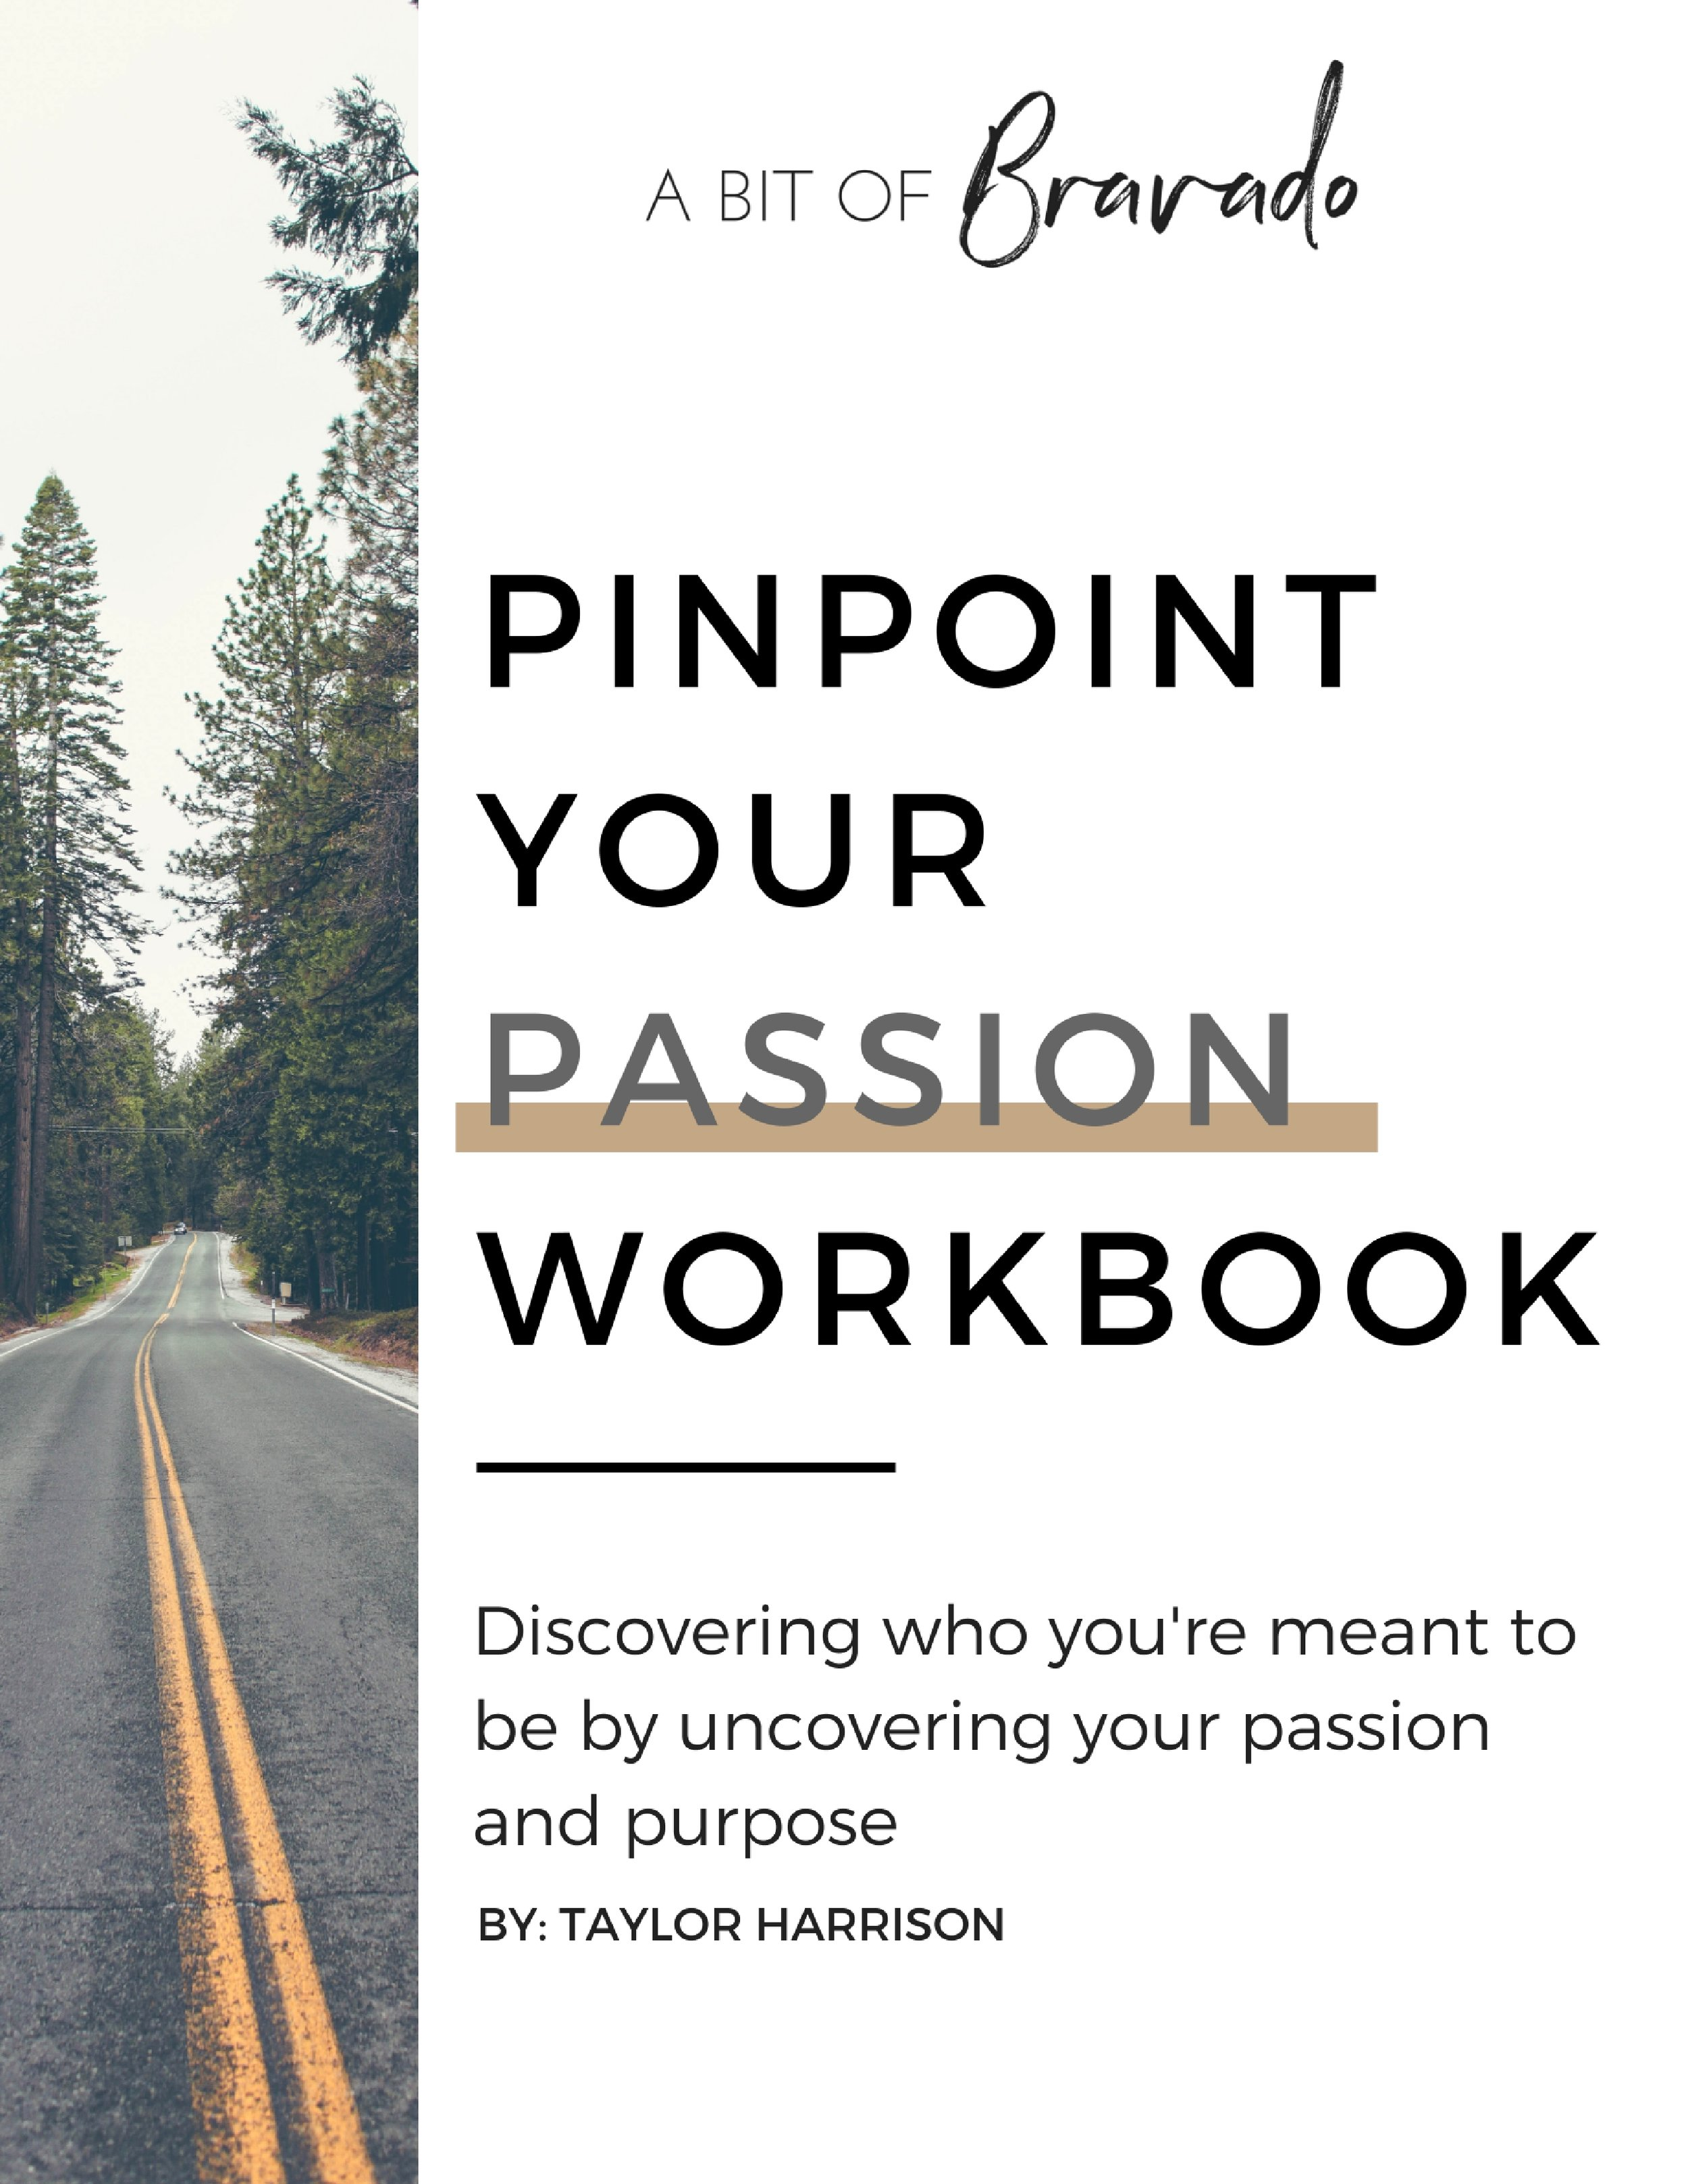 Pinpoint Your Passion Workbook.jpg